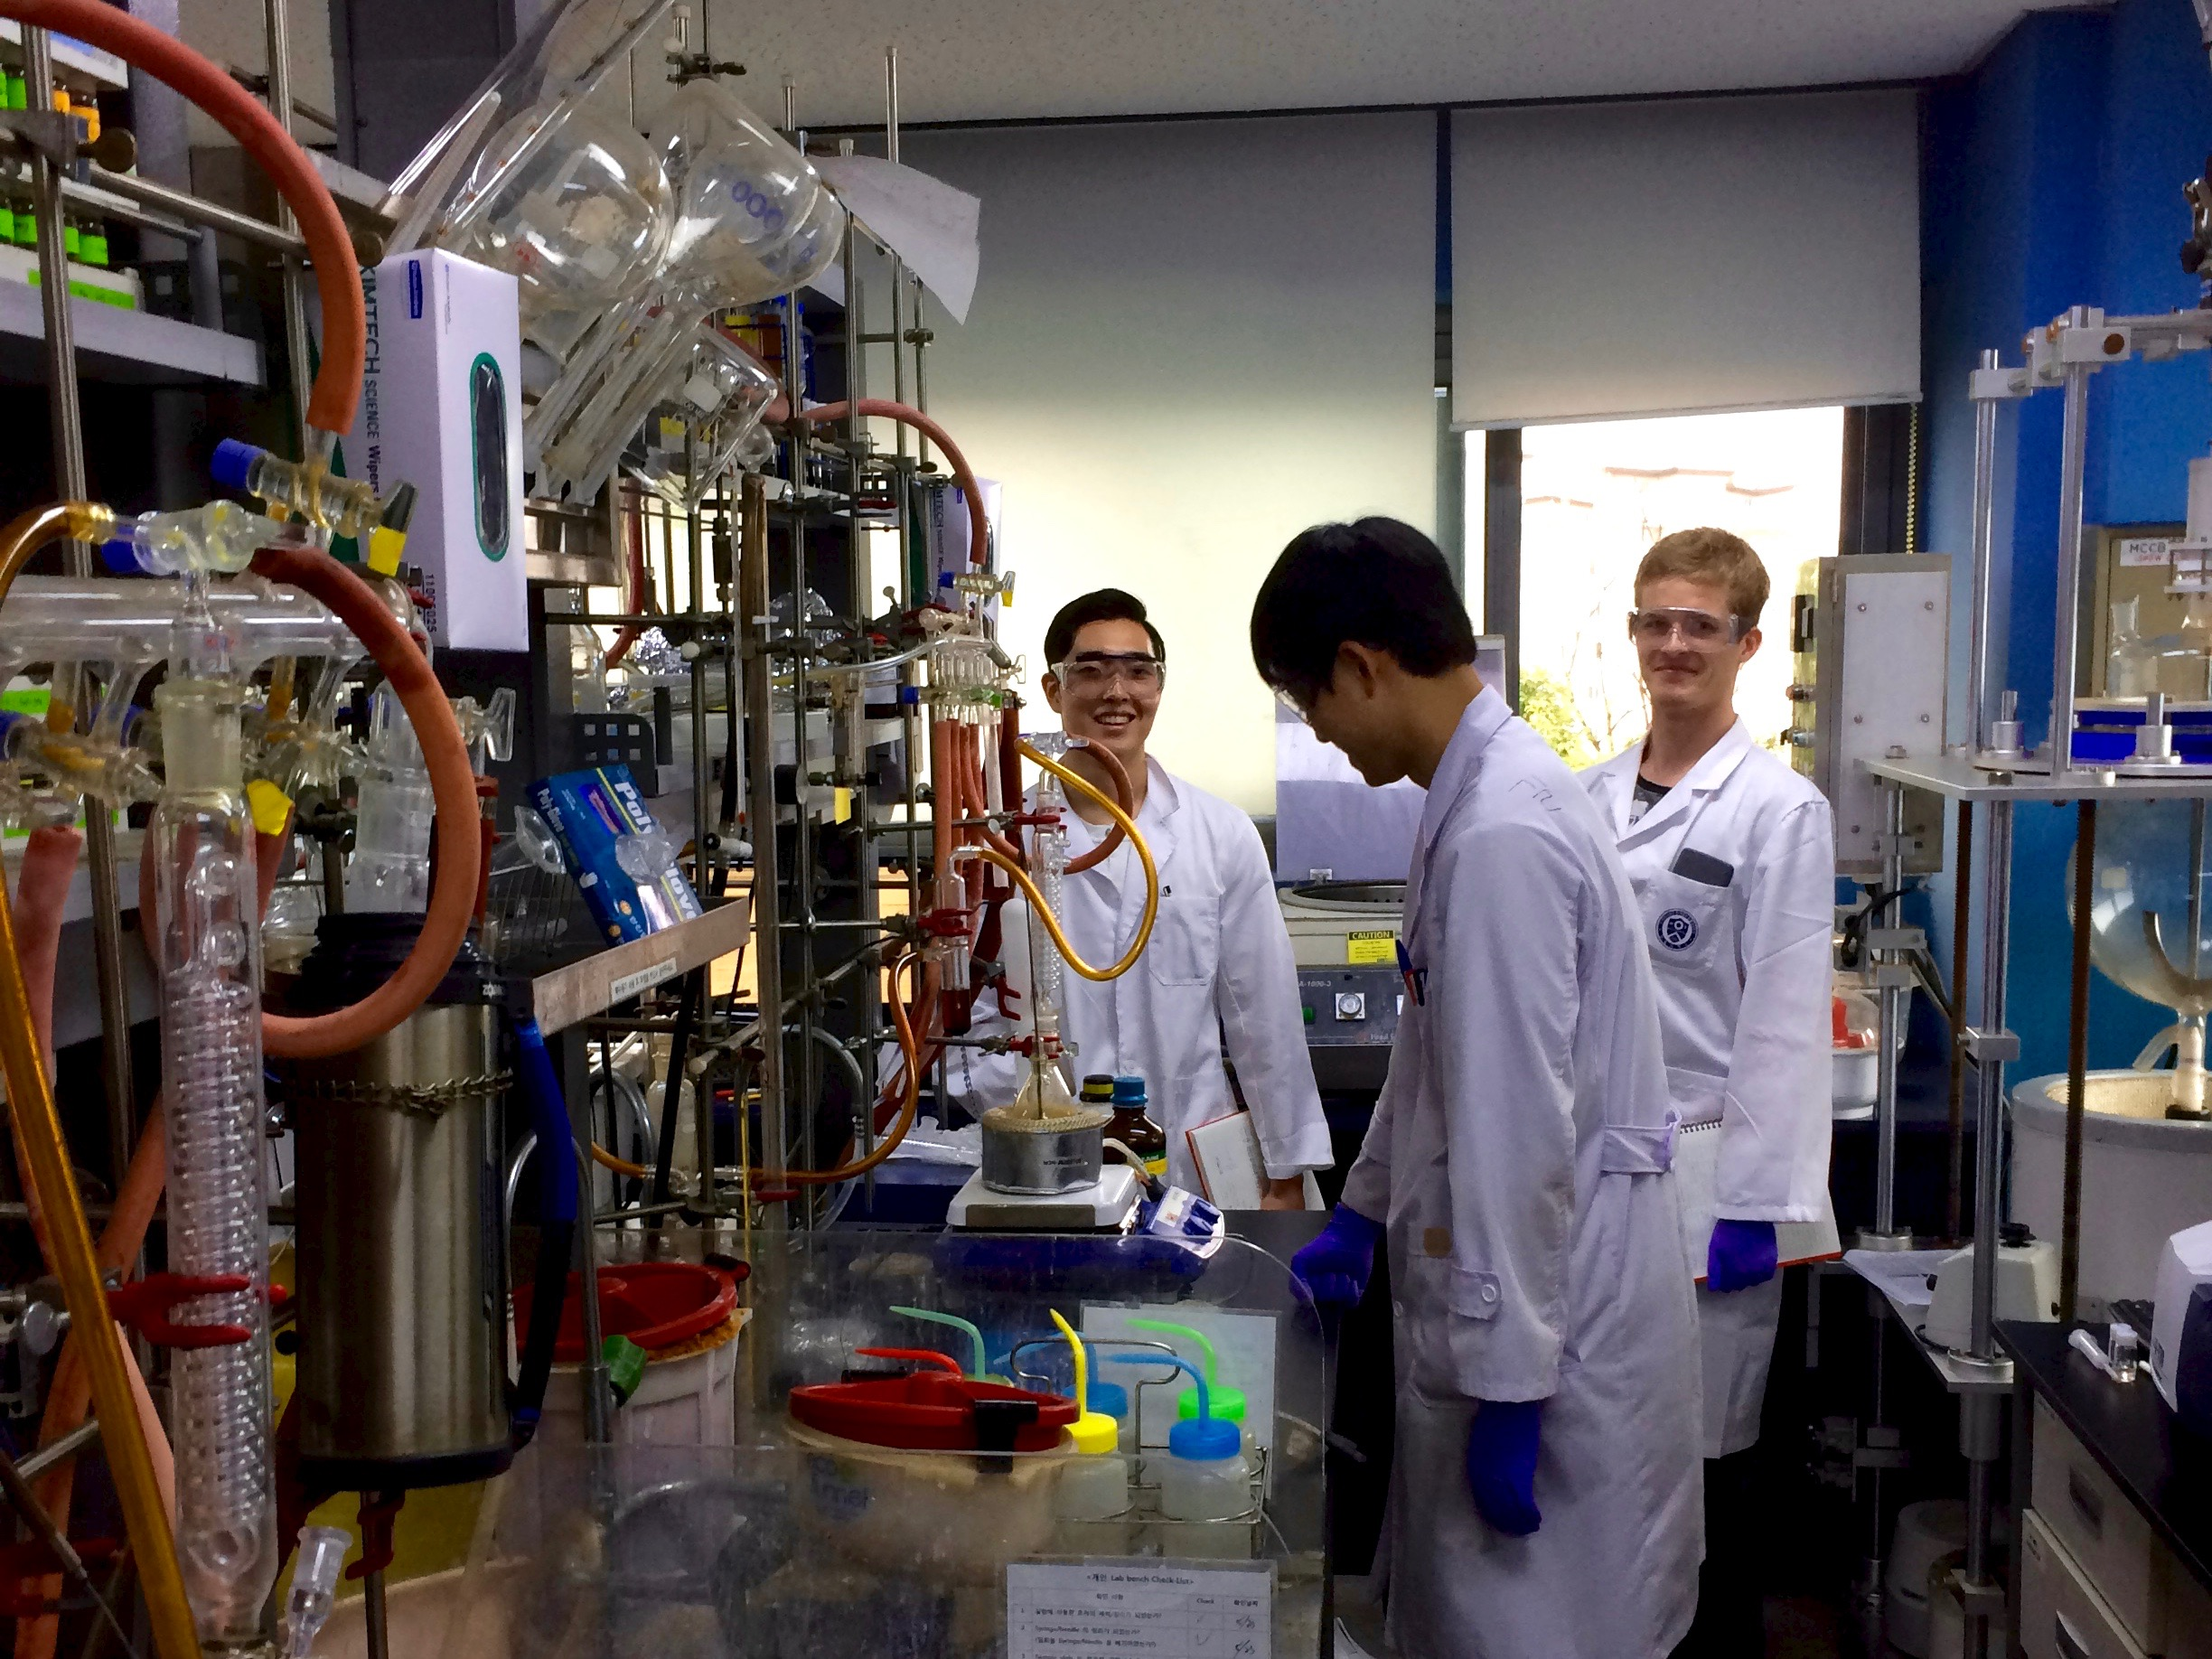 Three students in lab coats conducting an experiment